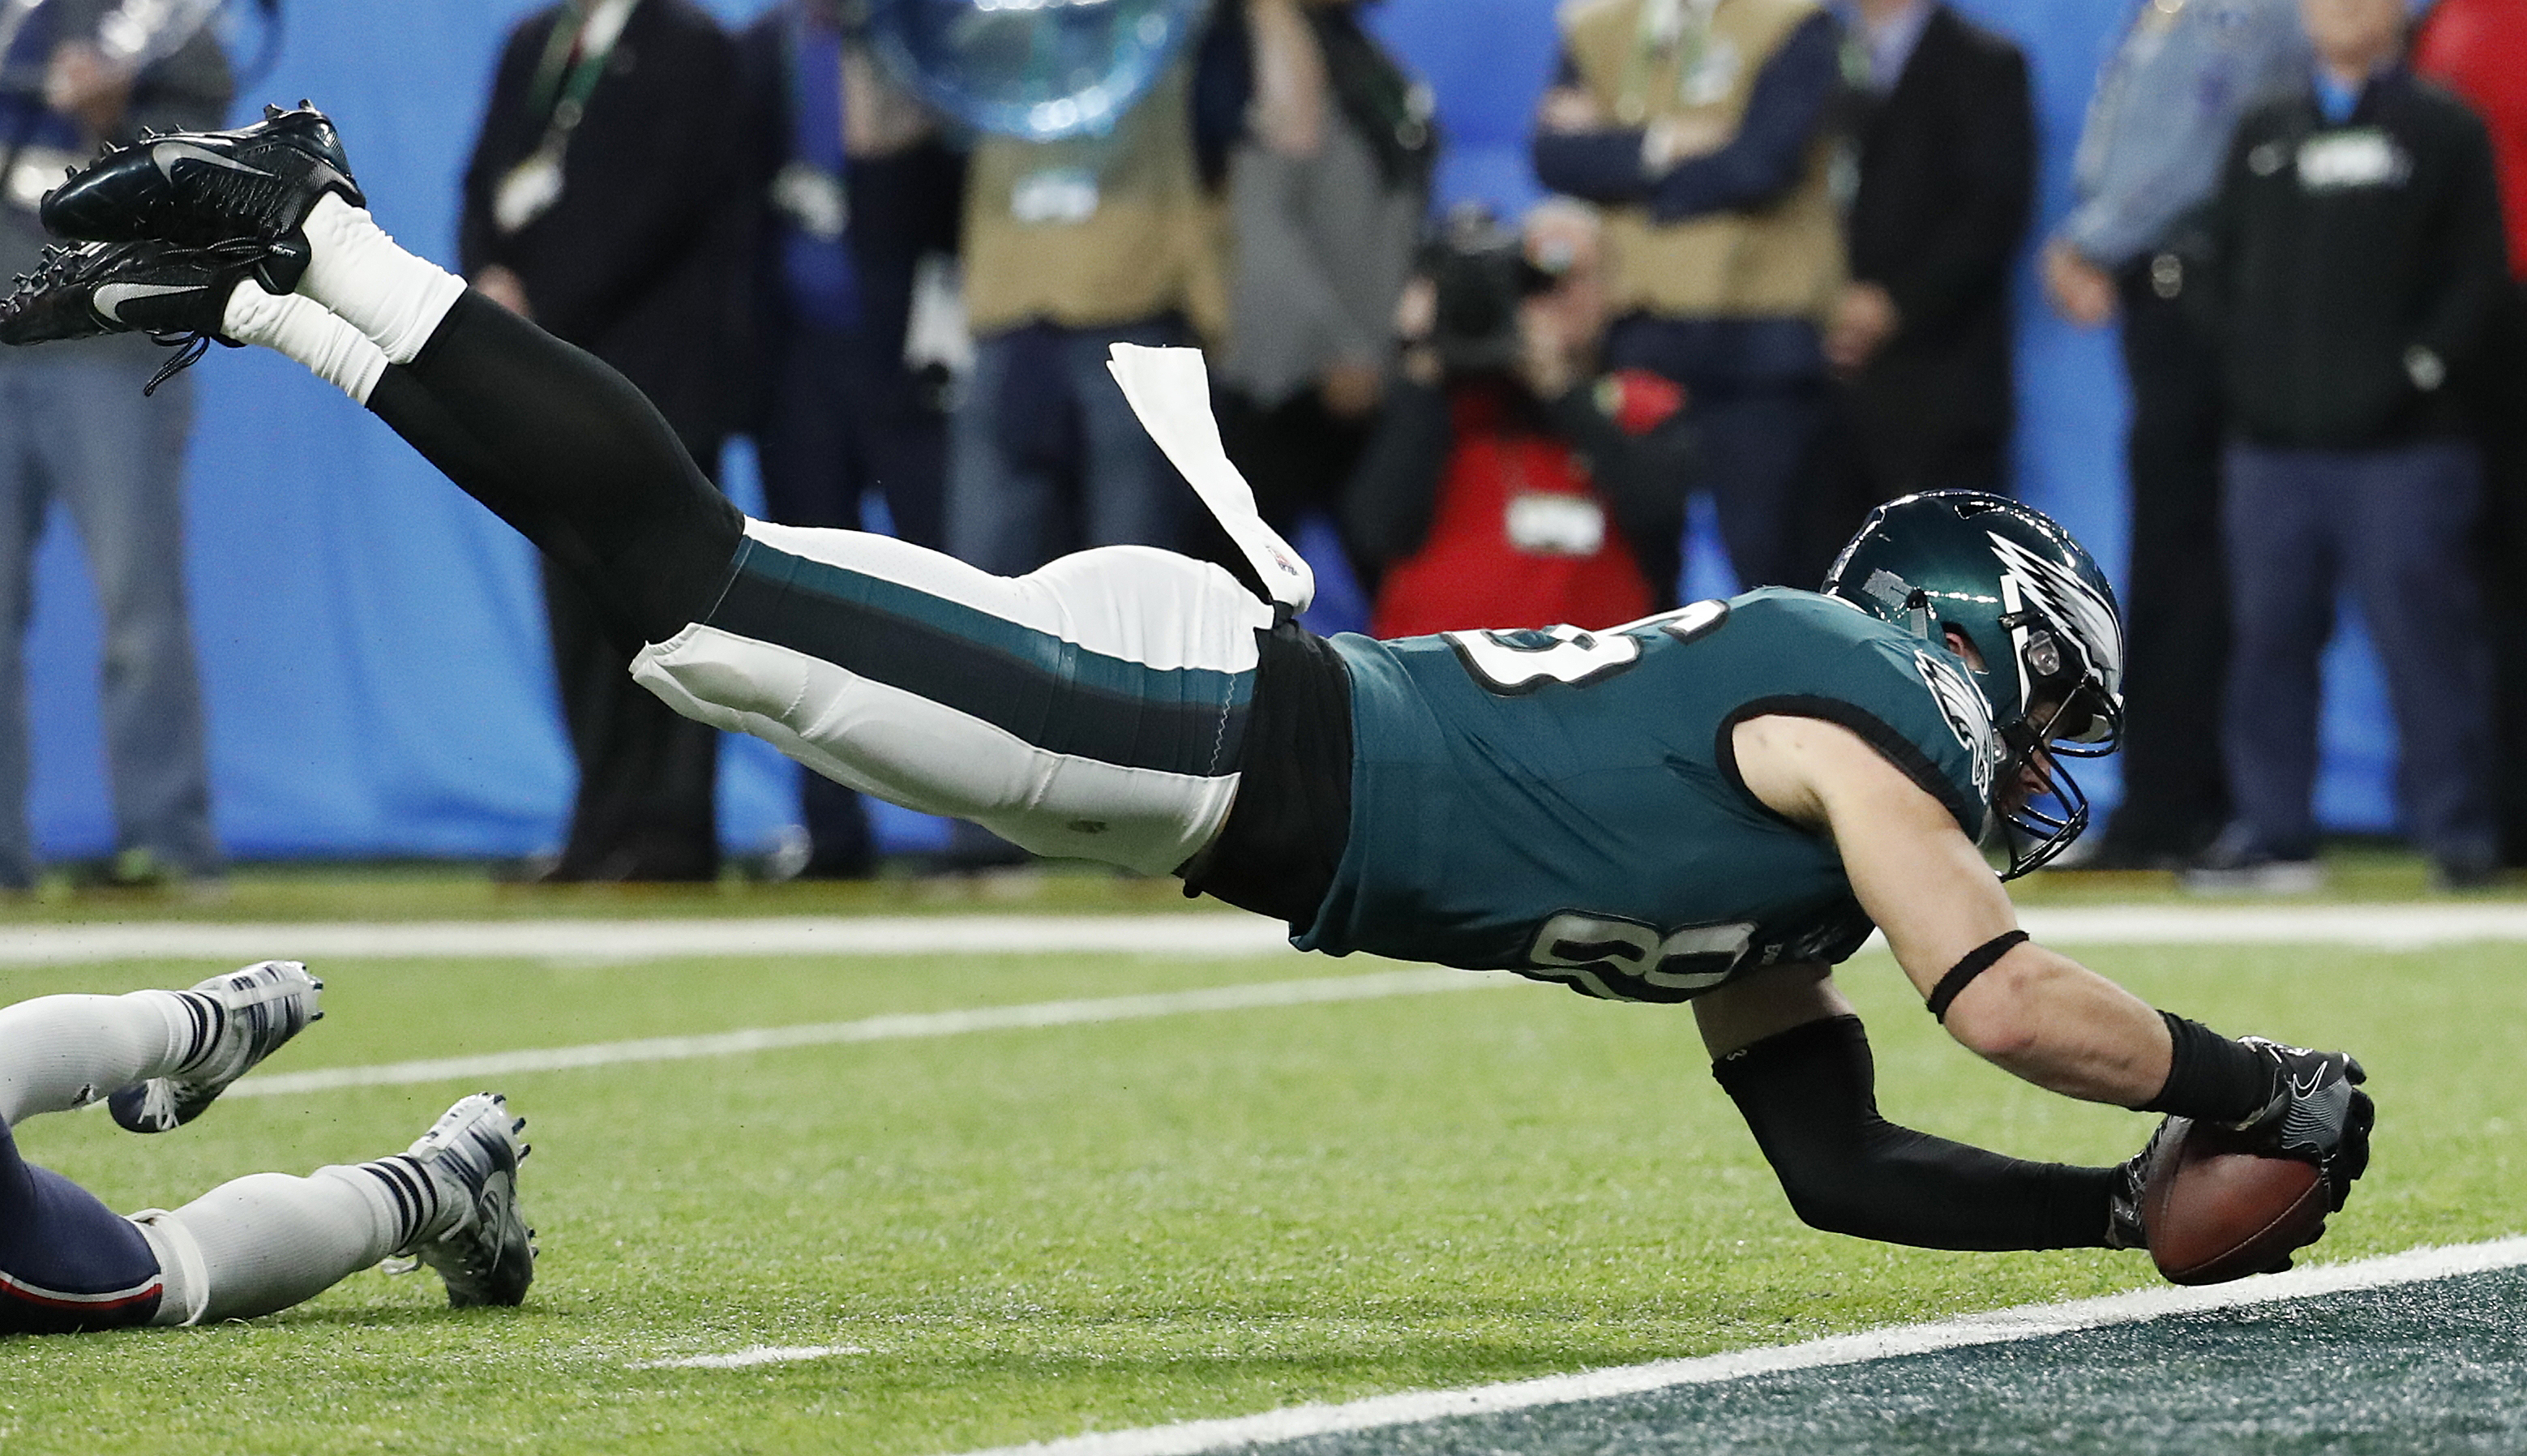 <div class='meta'><div class='origin-logo' data-origin='AP'></div><span class='caption-text' data-credit='AP Photo/Matt York'>Philadelphia Eagles' Zach Ertz catches a touchdown pass during the second half of the NFL Super Bowl 52 football game against the New England Patriots.</span></div>